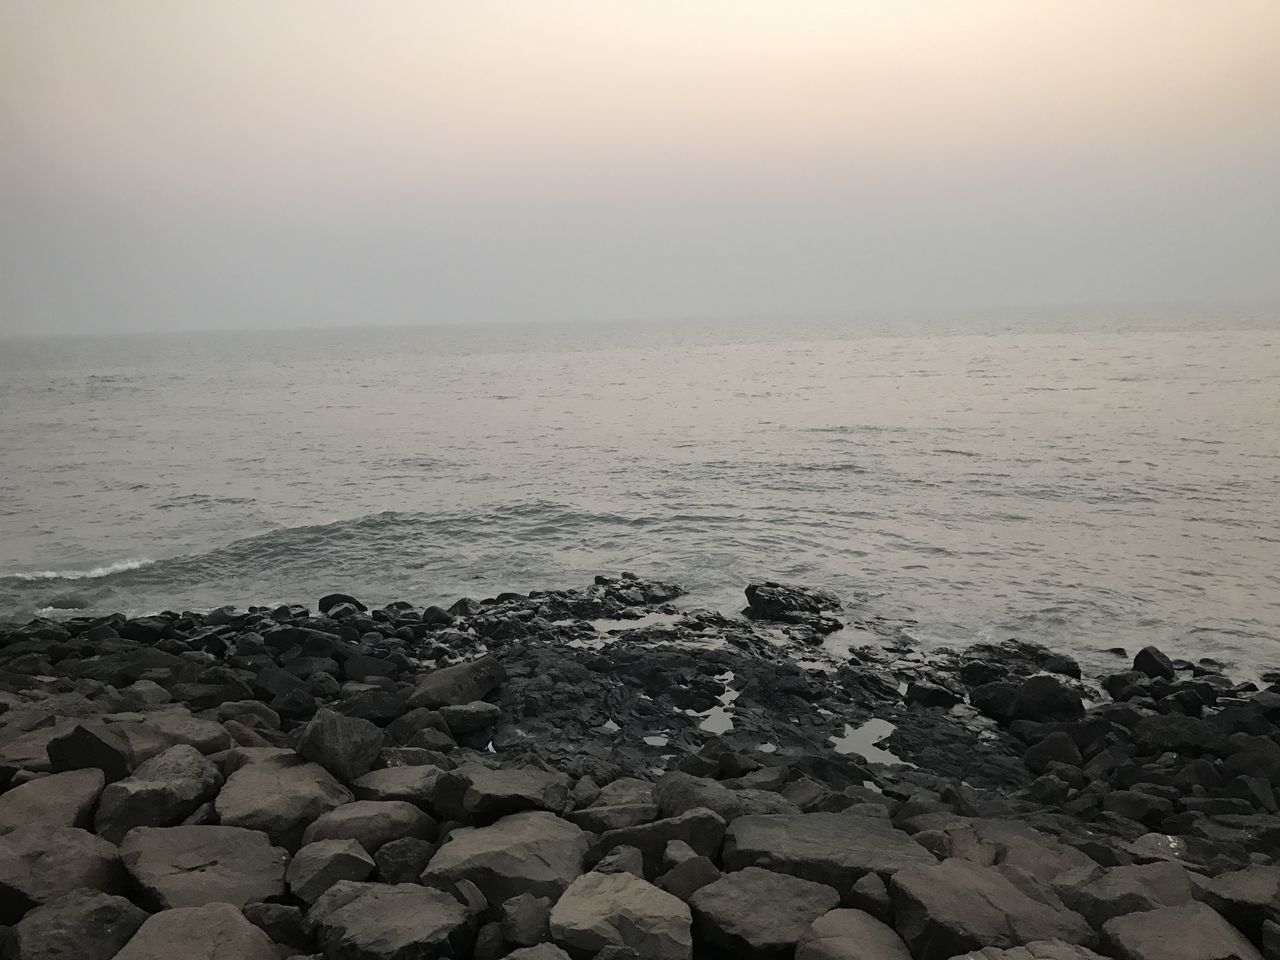 sea, beauty in nature, nature, pebble, pebble beach, water, tranquil scene, shore, tranquility, horizon over water, beach, scenics, no people, outdoors, rock - object, sky, sunset, clear sky, day